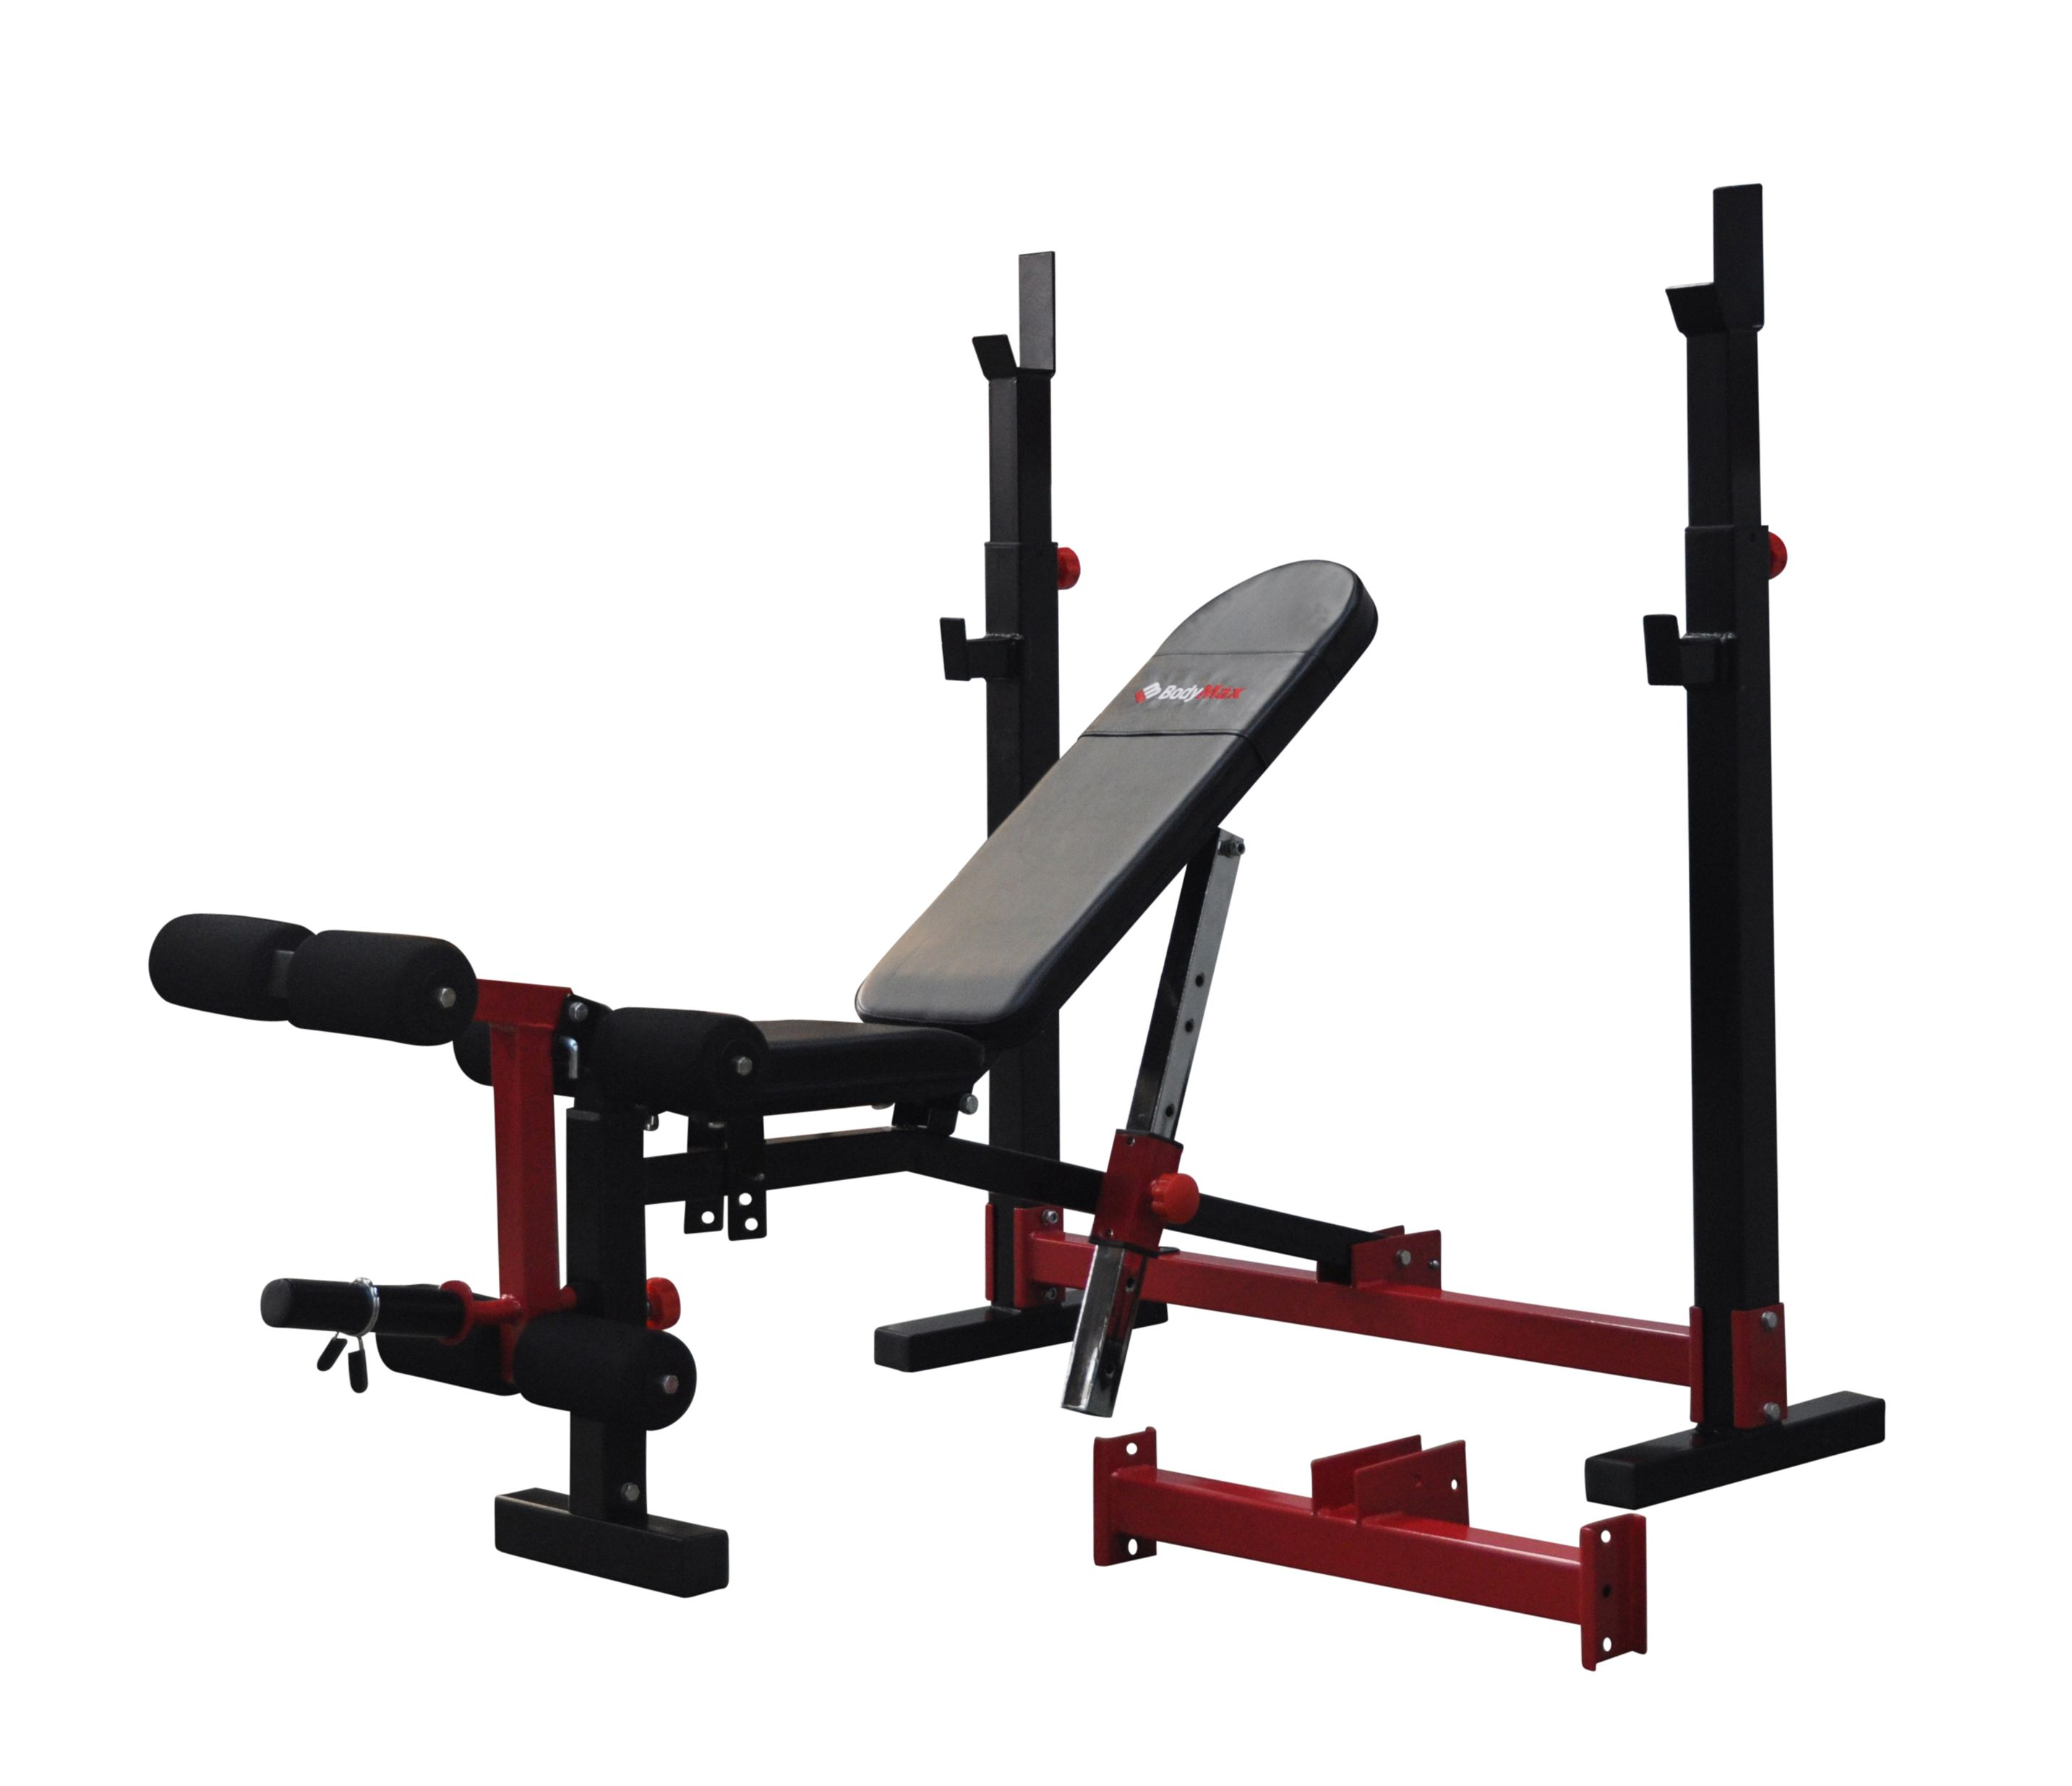 Used Weight Bench | Powerhouse Strength Series Weight Bench | Powerhouse Weight Bench